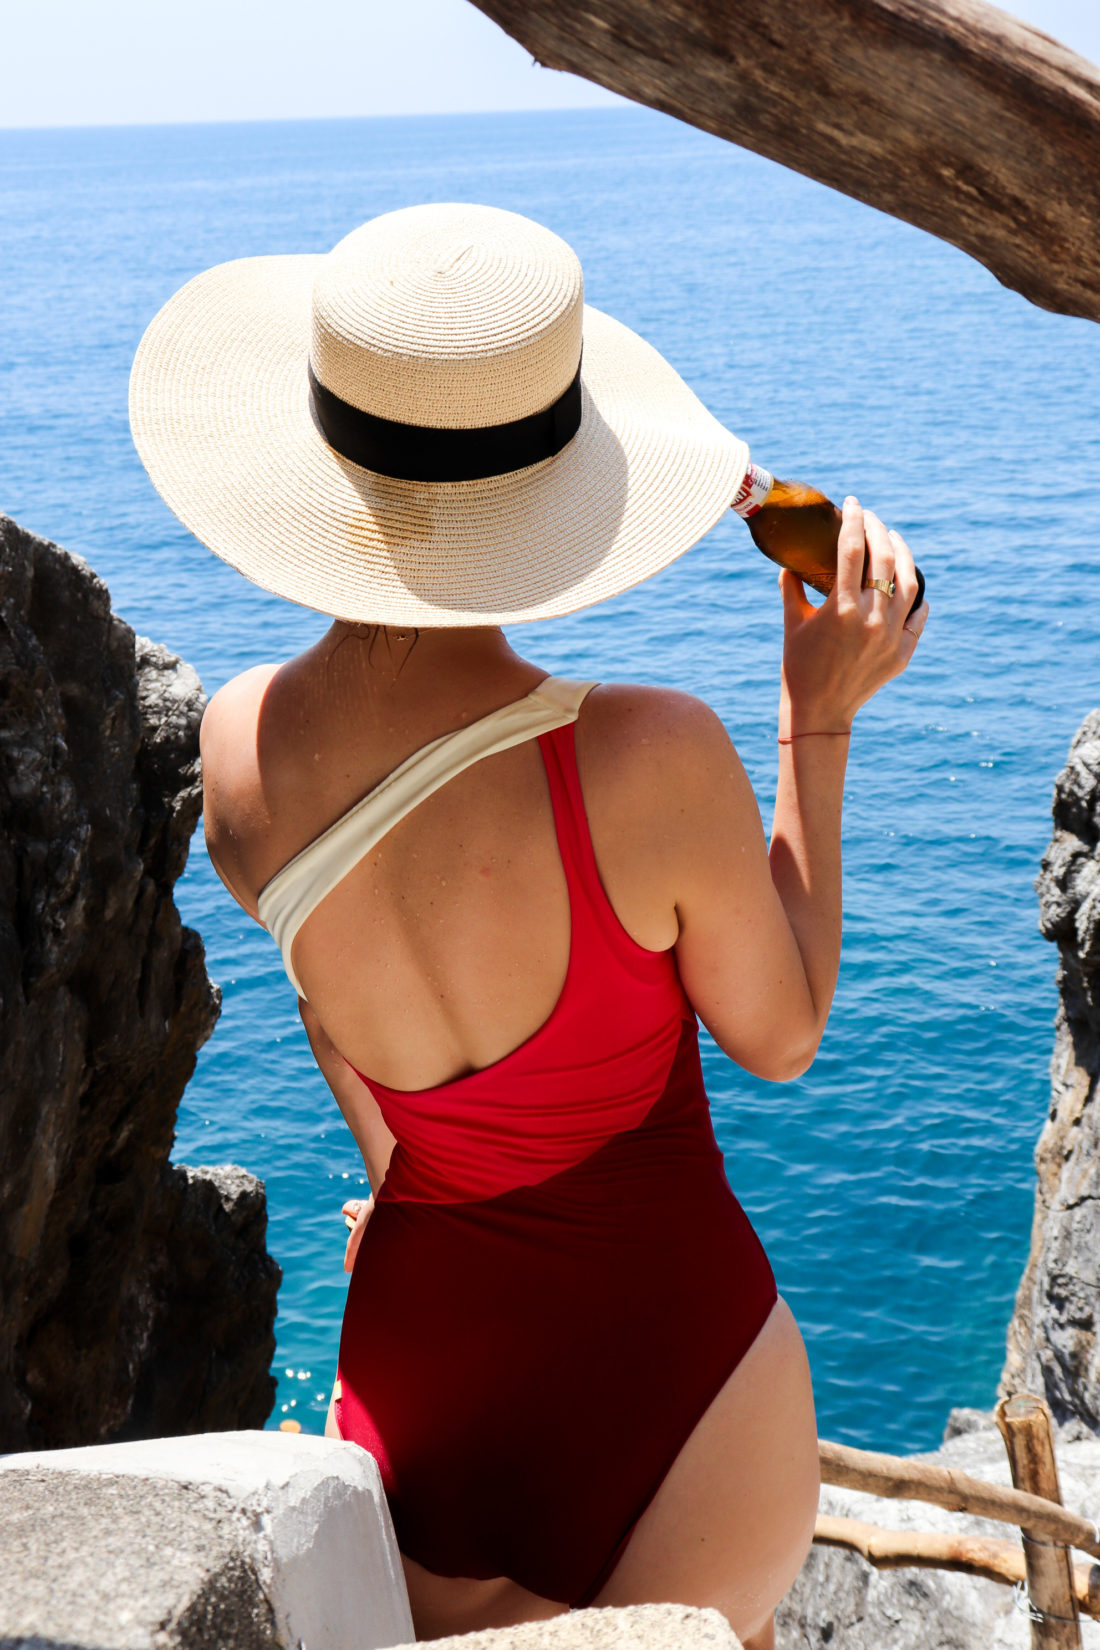 Eva Amurri Martino wears a straw hat and bathing suit in the Amalfi Coast